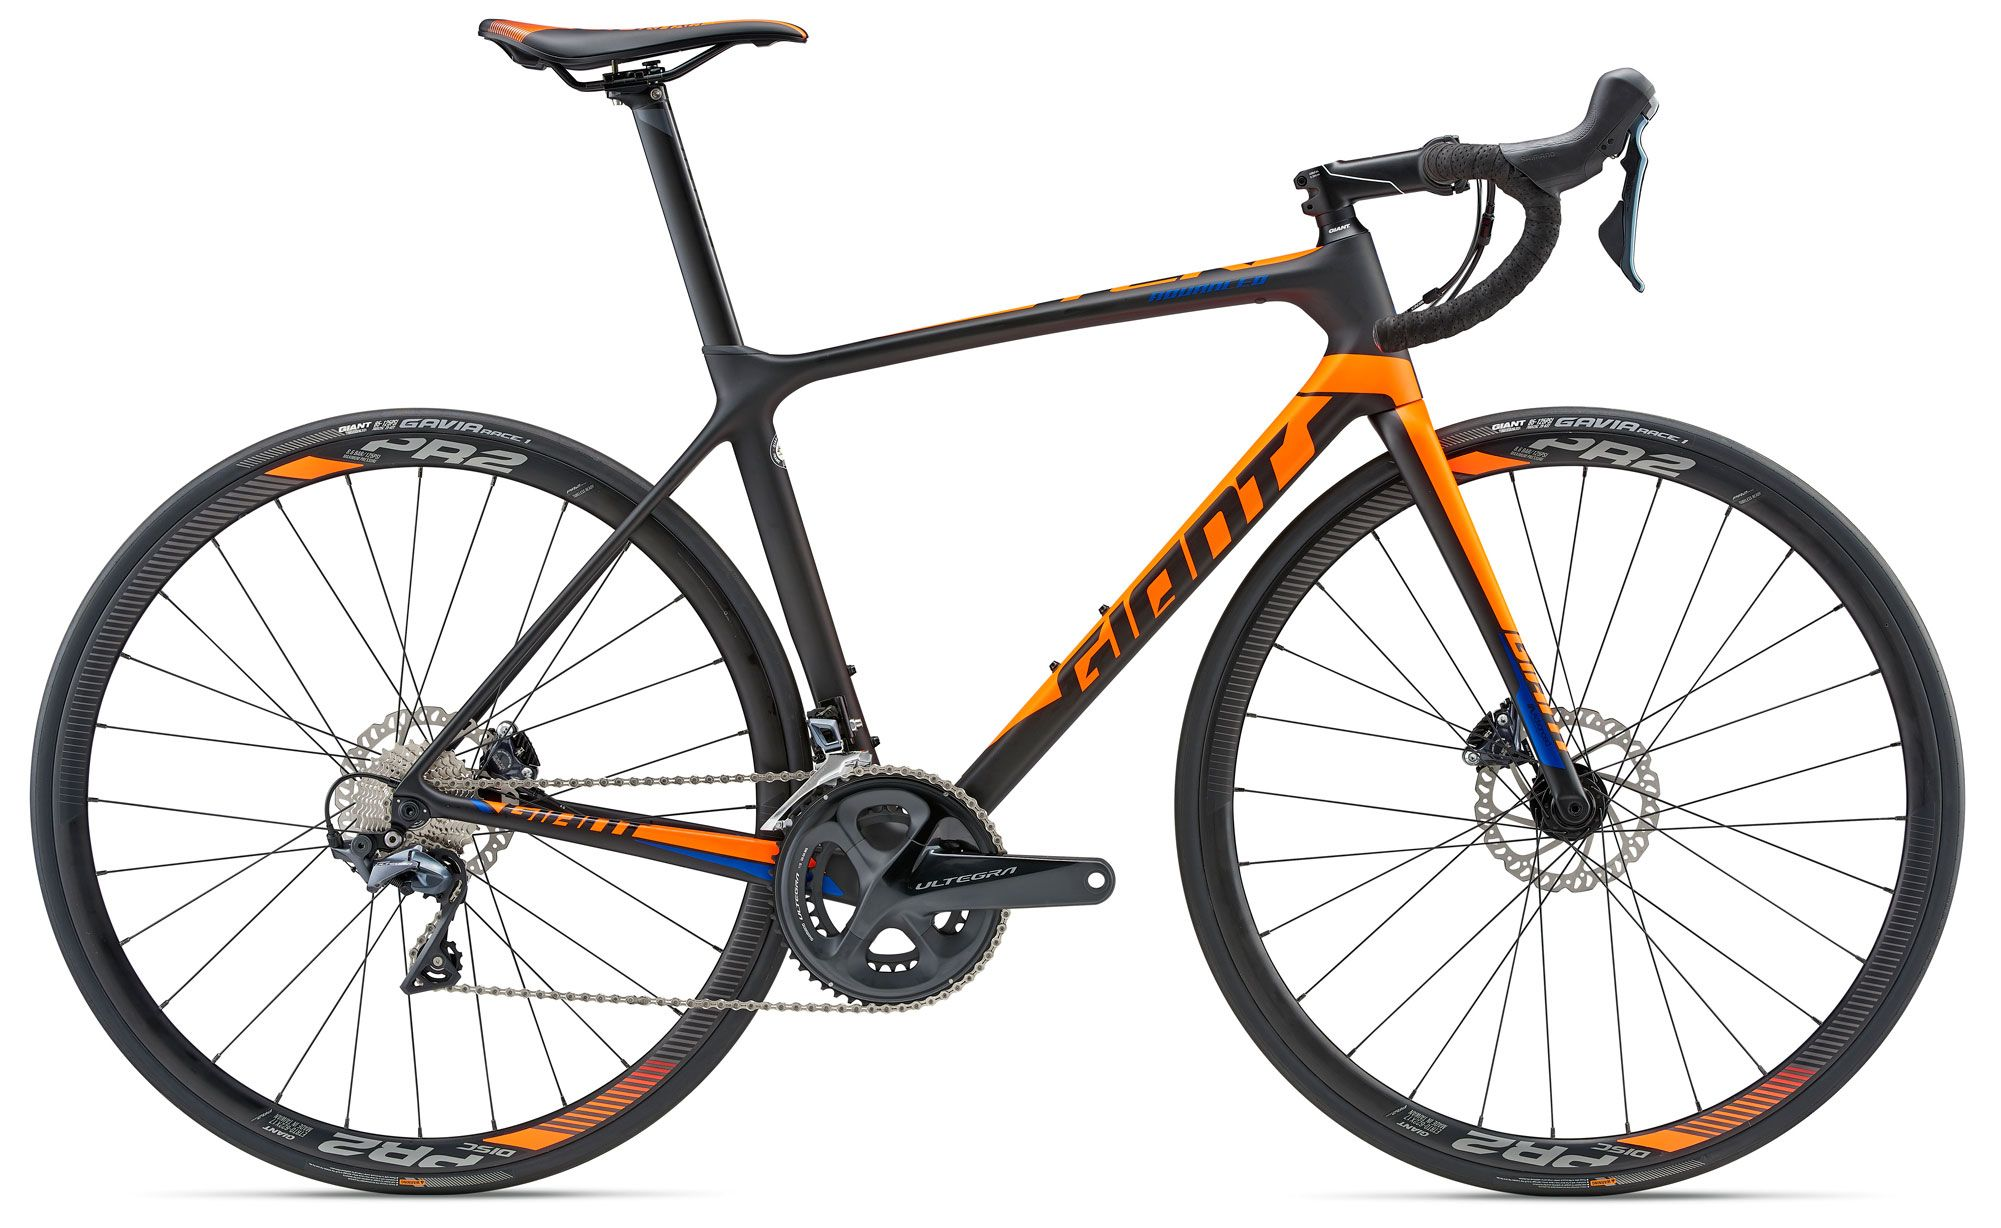 Велосипед Giant TCR Advanced 1 Disc 2018 велосипед giant anthem advanced 27 5 2 2016